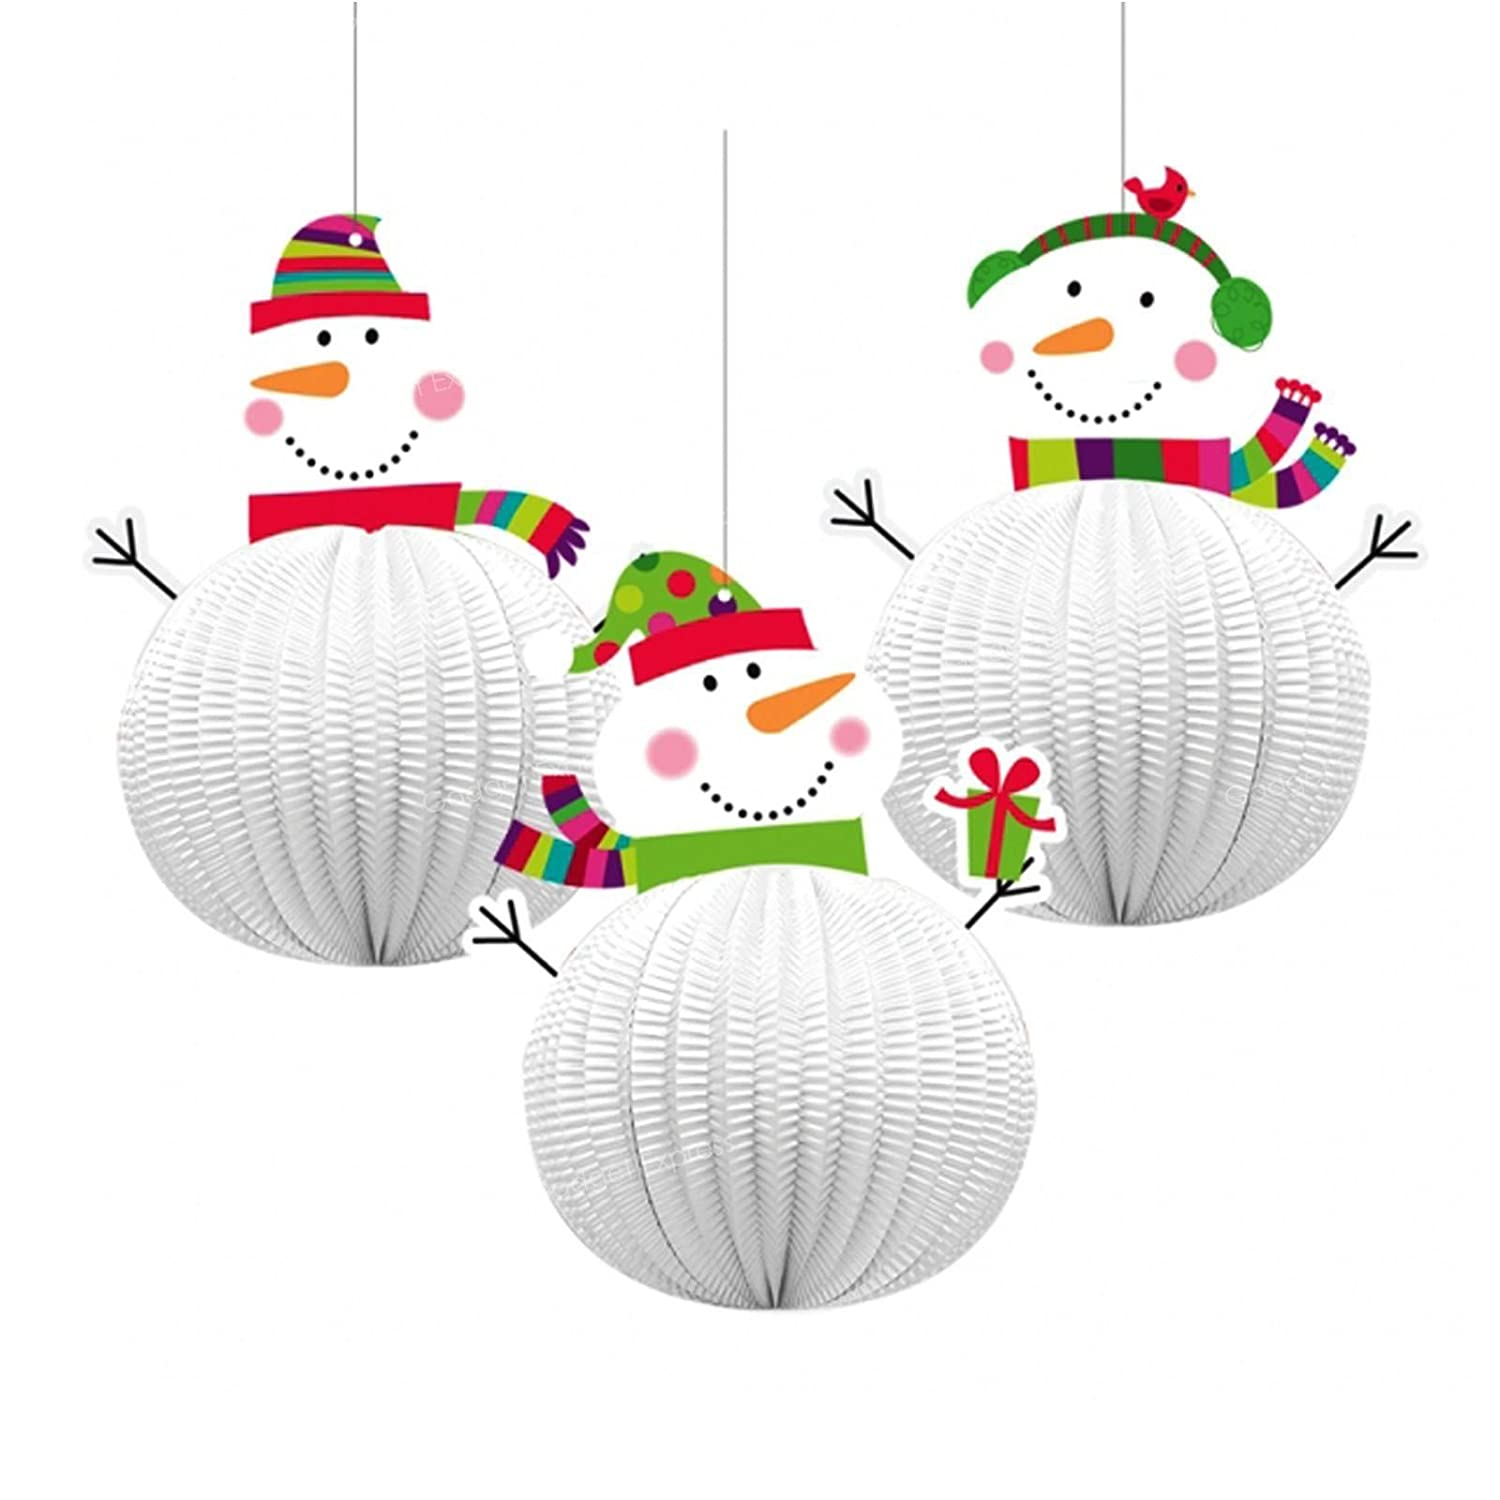 3 x Honeycomb Jolly Snowman 3D Xmas Hanging Party Festive Decorations Christmas Ceiling Window Wall 20.3cm Tall Paper and Card Three Designs Amscan